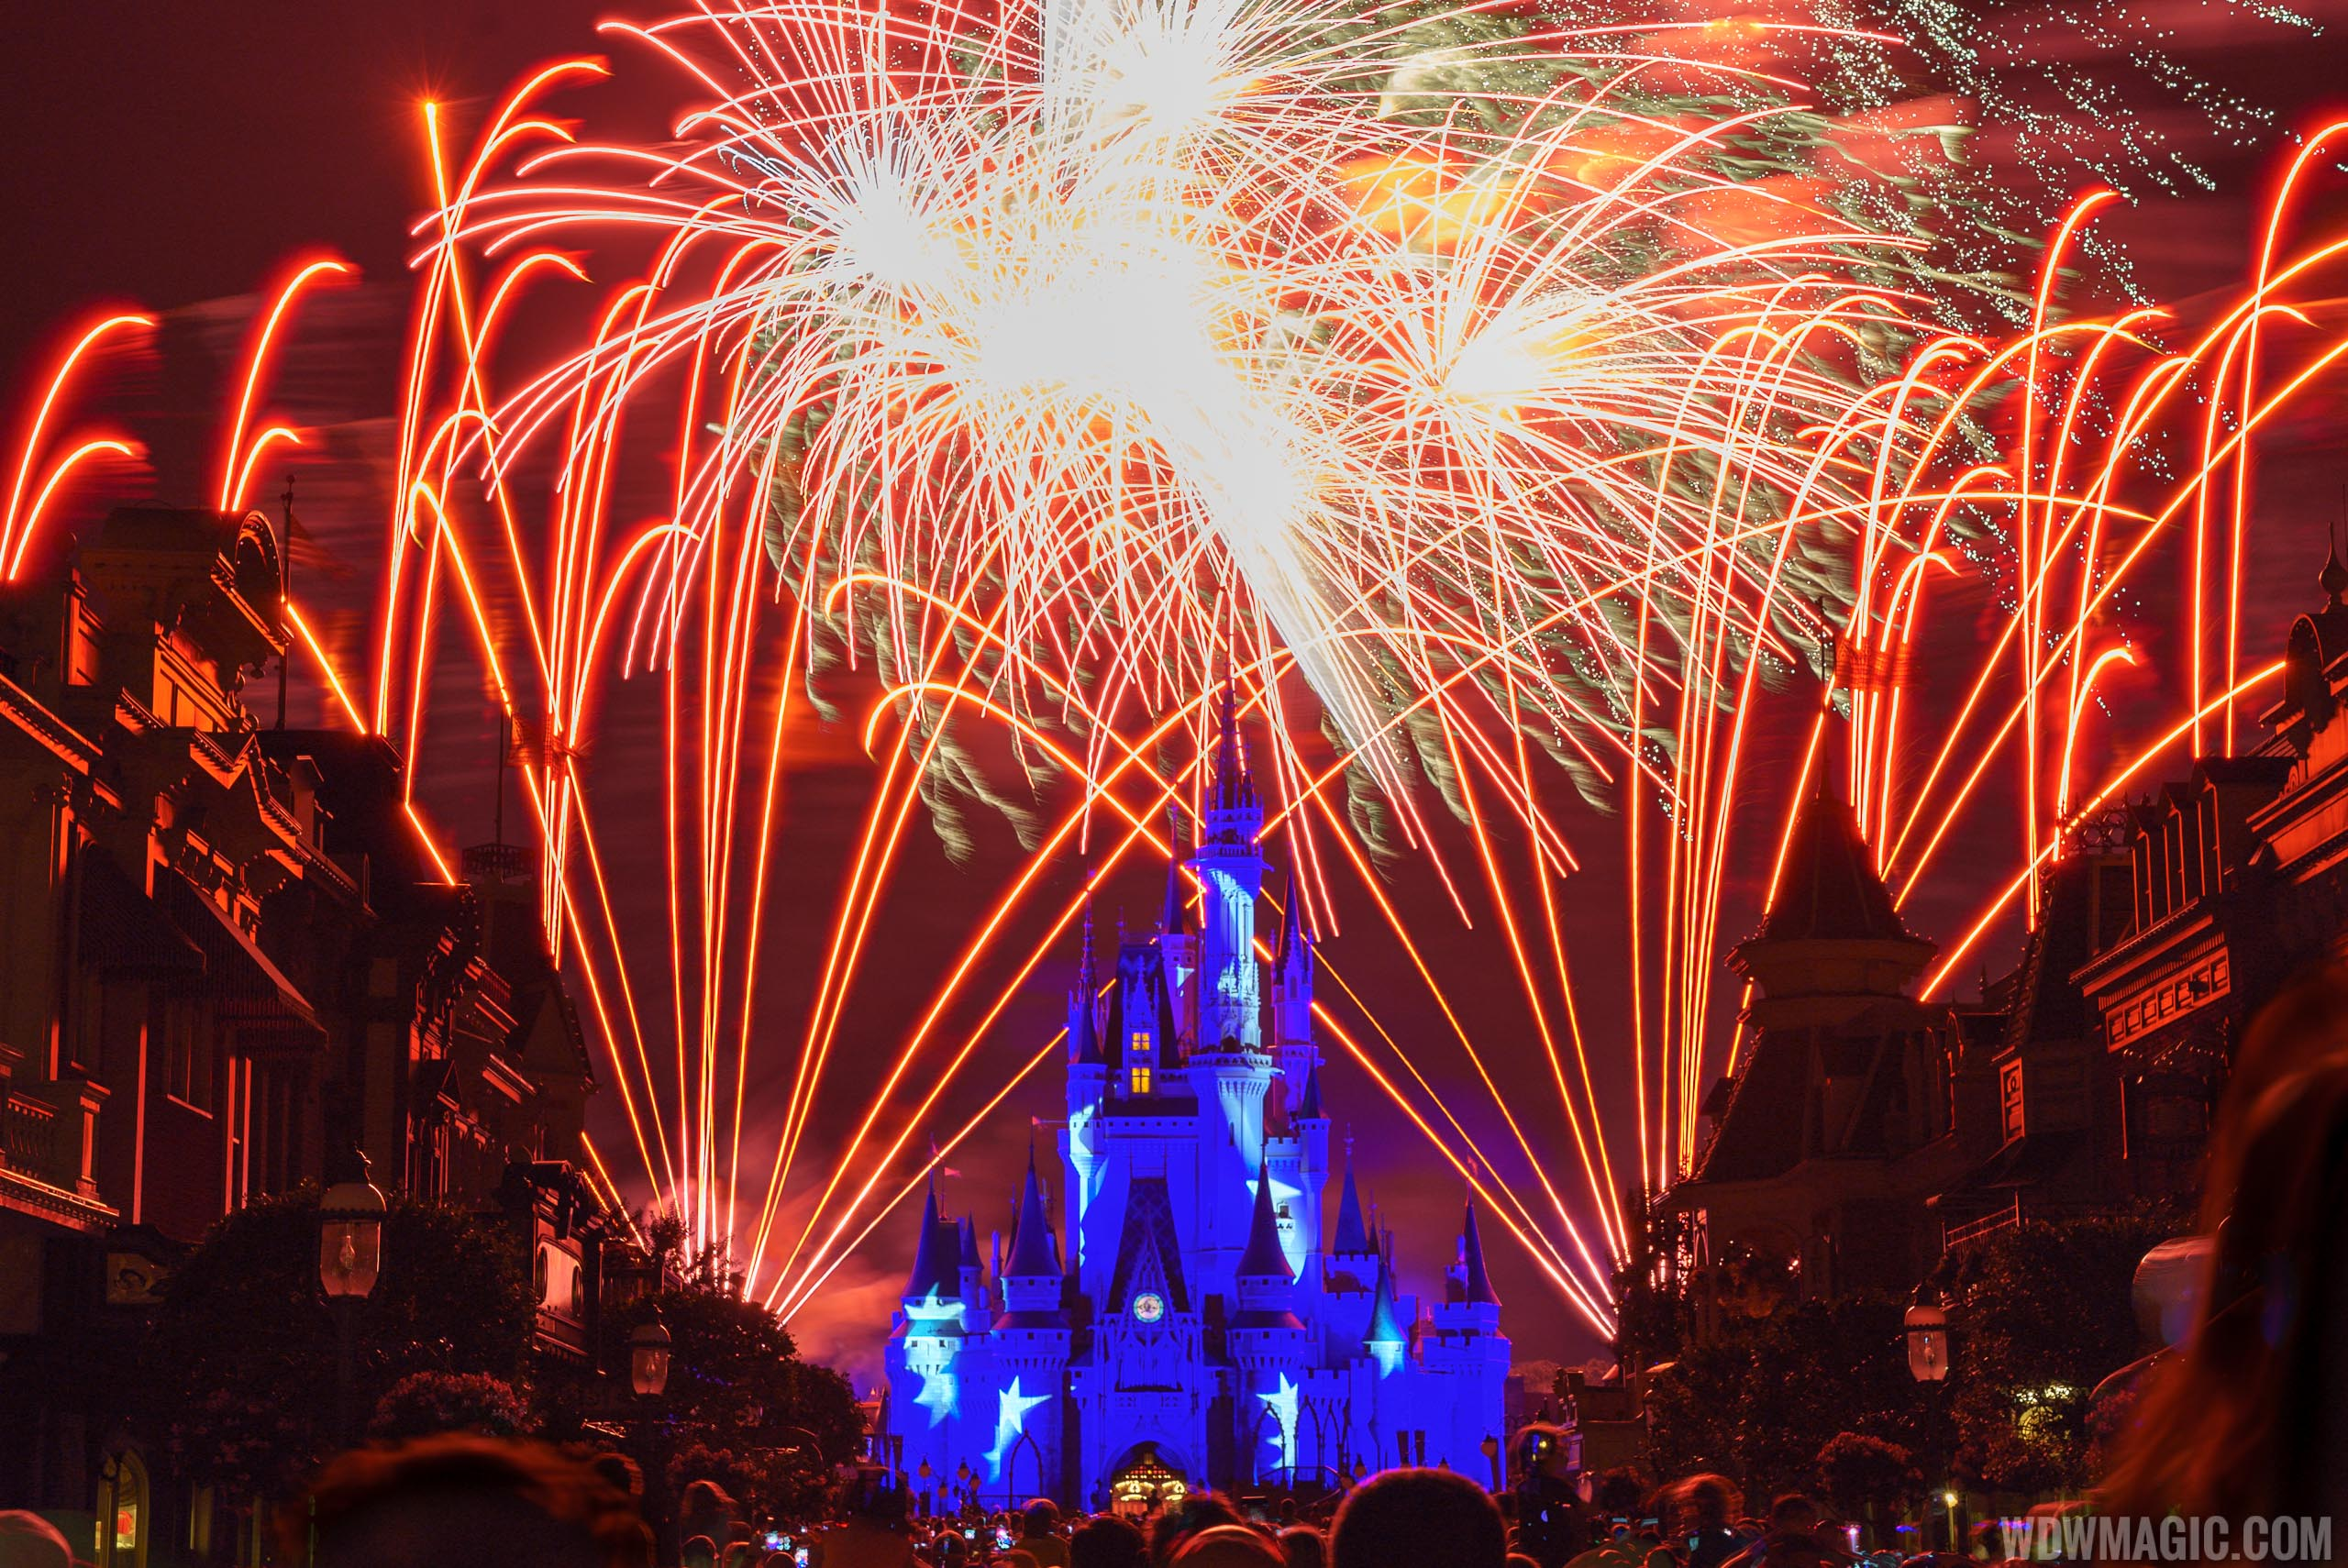 Walt Disney World is one of the largest consumers of fireworks in the world